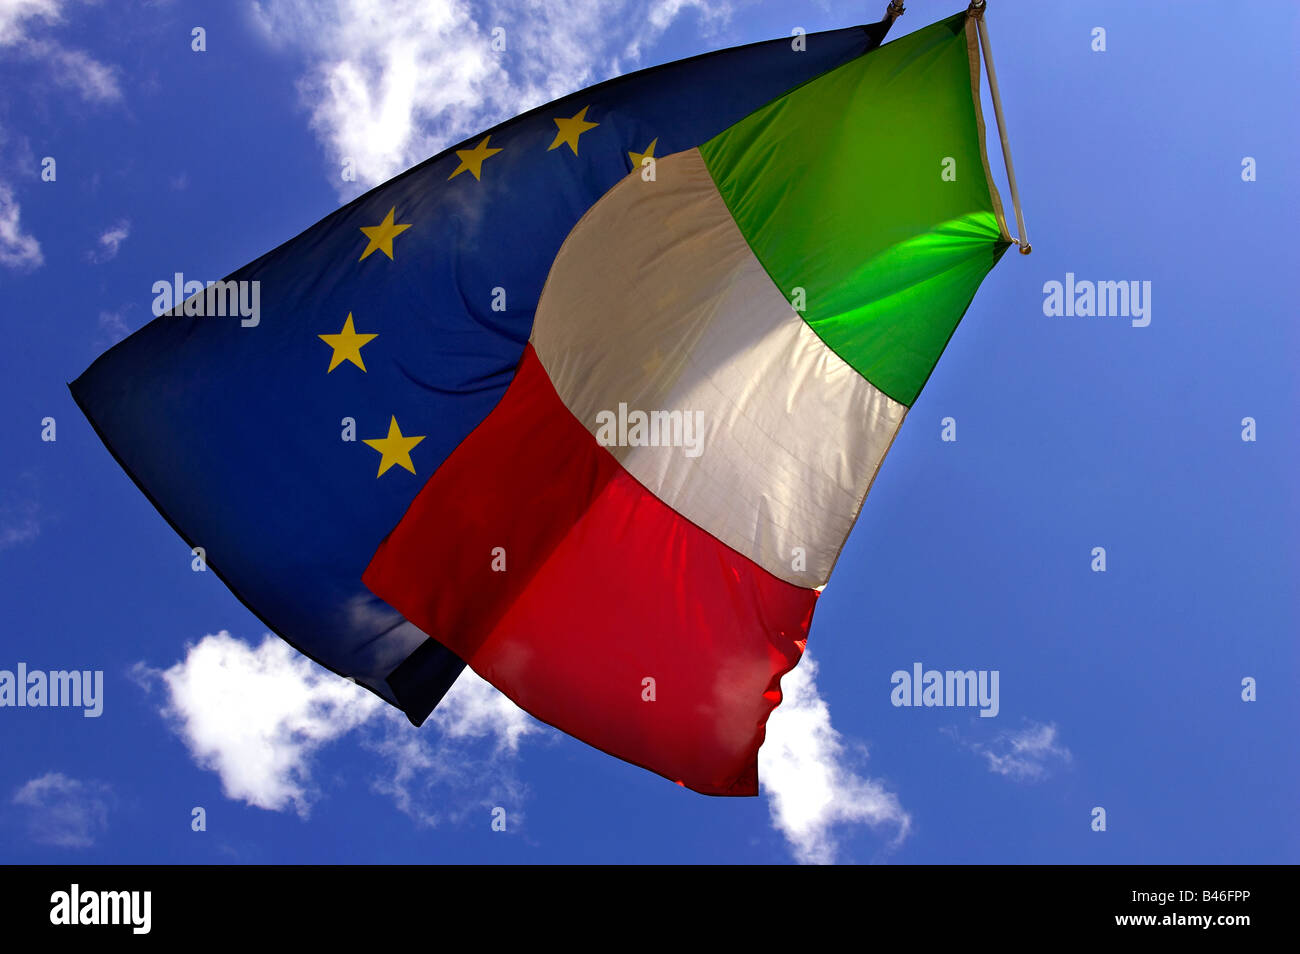 The Italian and European Union flags - Stock Image